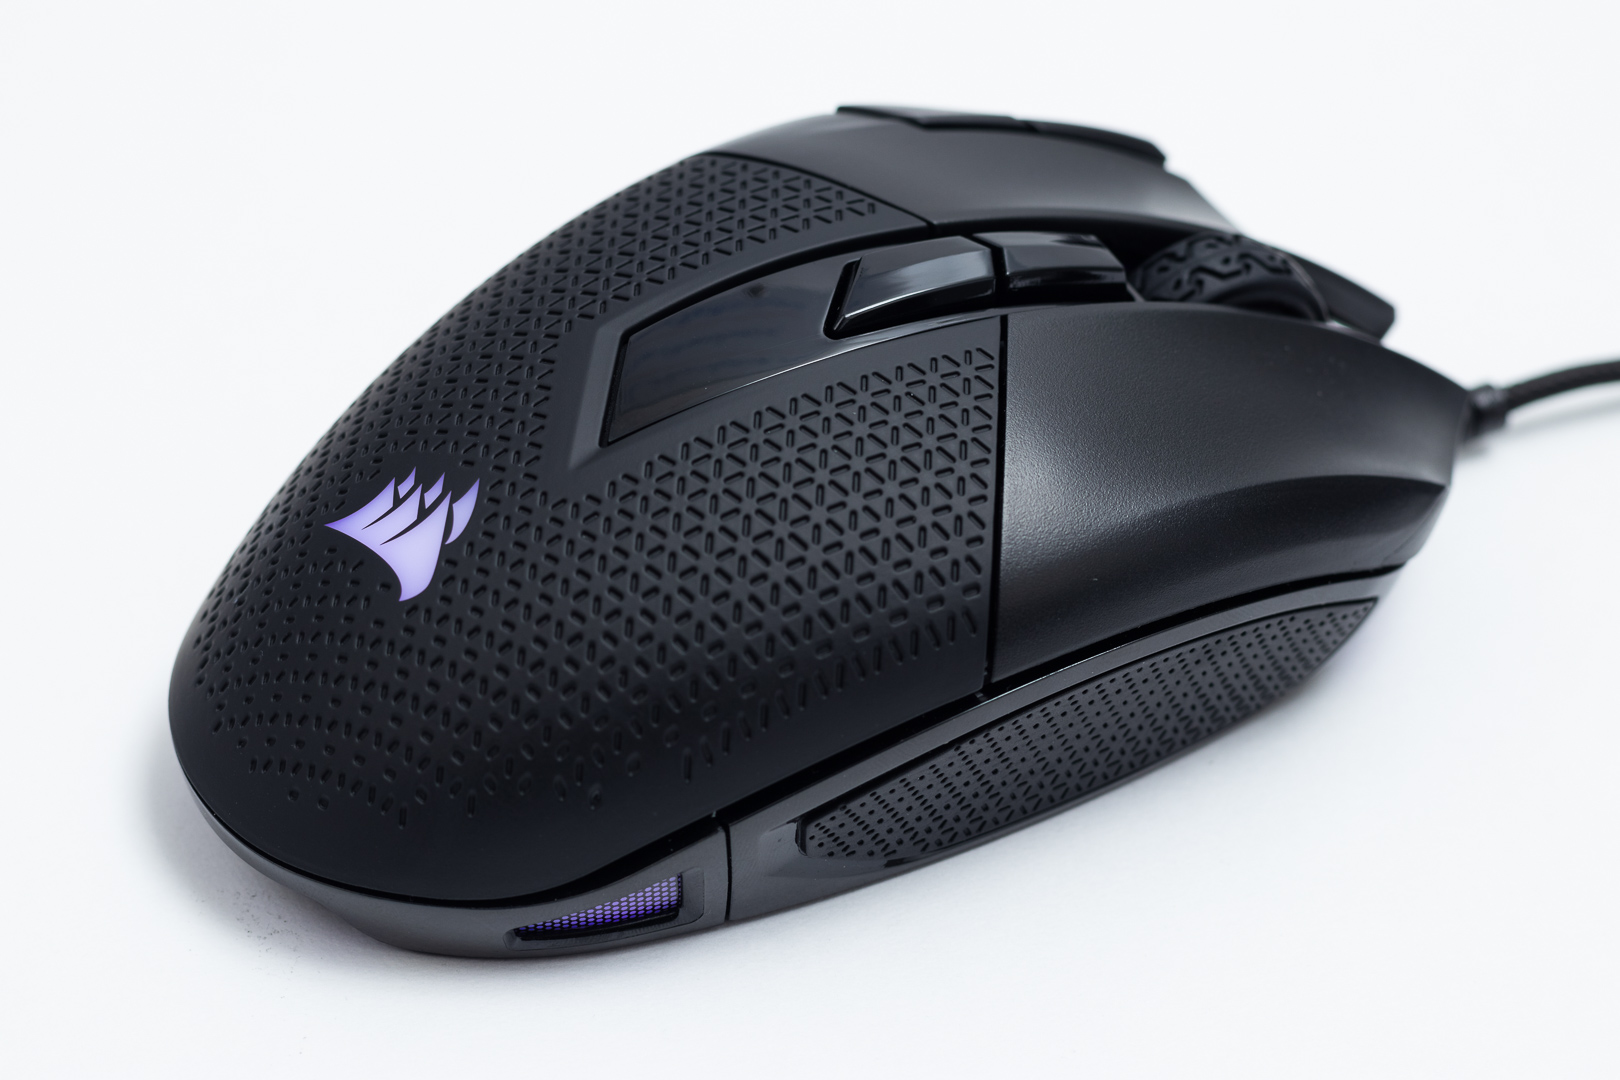 Corsair RGB Gaming Mouse Round-Up: M55, Glaive Pro, Nightsword, Ironclaw Tested